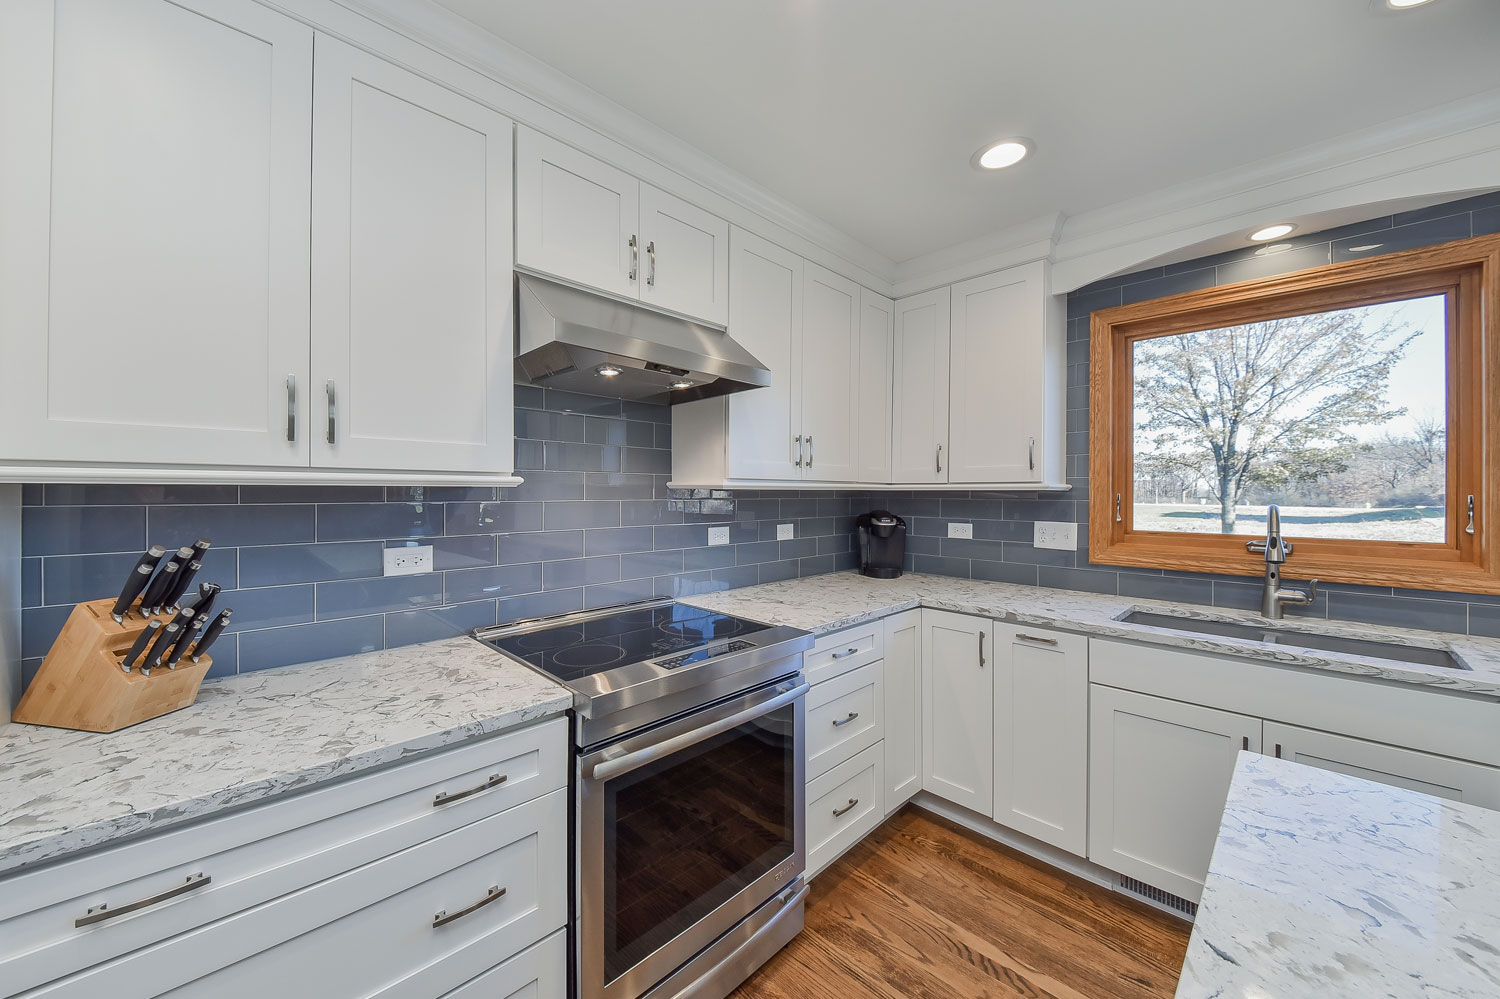 Homer Glen Kitchen Remodeling Project With White Shaker Cabinetry Quartz Countertops Blue Subway Tile